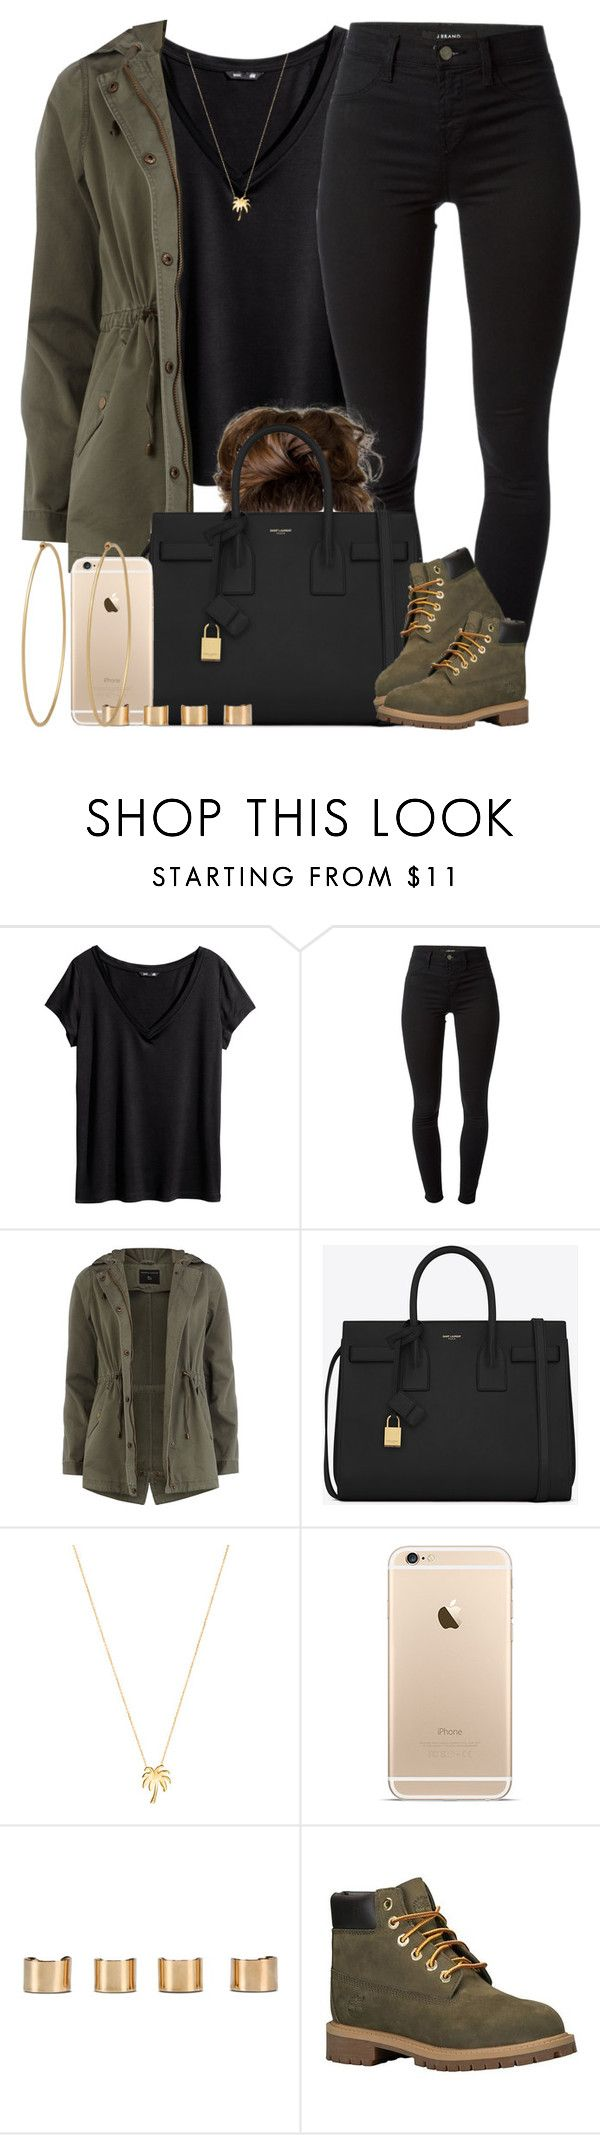 """Pull up in that all Black. "" by livelifefreelyy ❤ liked on Polyvore featuring H&M, J Brand, Dorothy Perkins, Yves Saint Laurent, Joolz by Martha Calvo, Maison Margiela, Timberland, Social Anarchy, women's clothing and women's fashion"